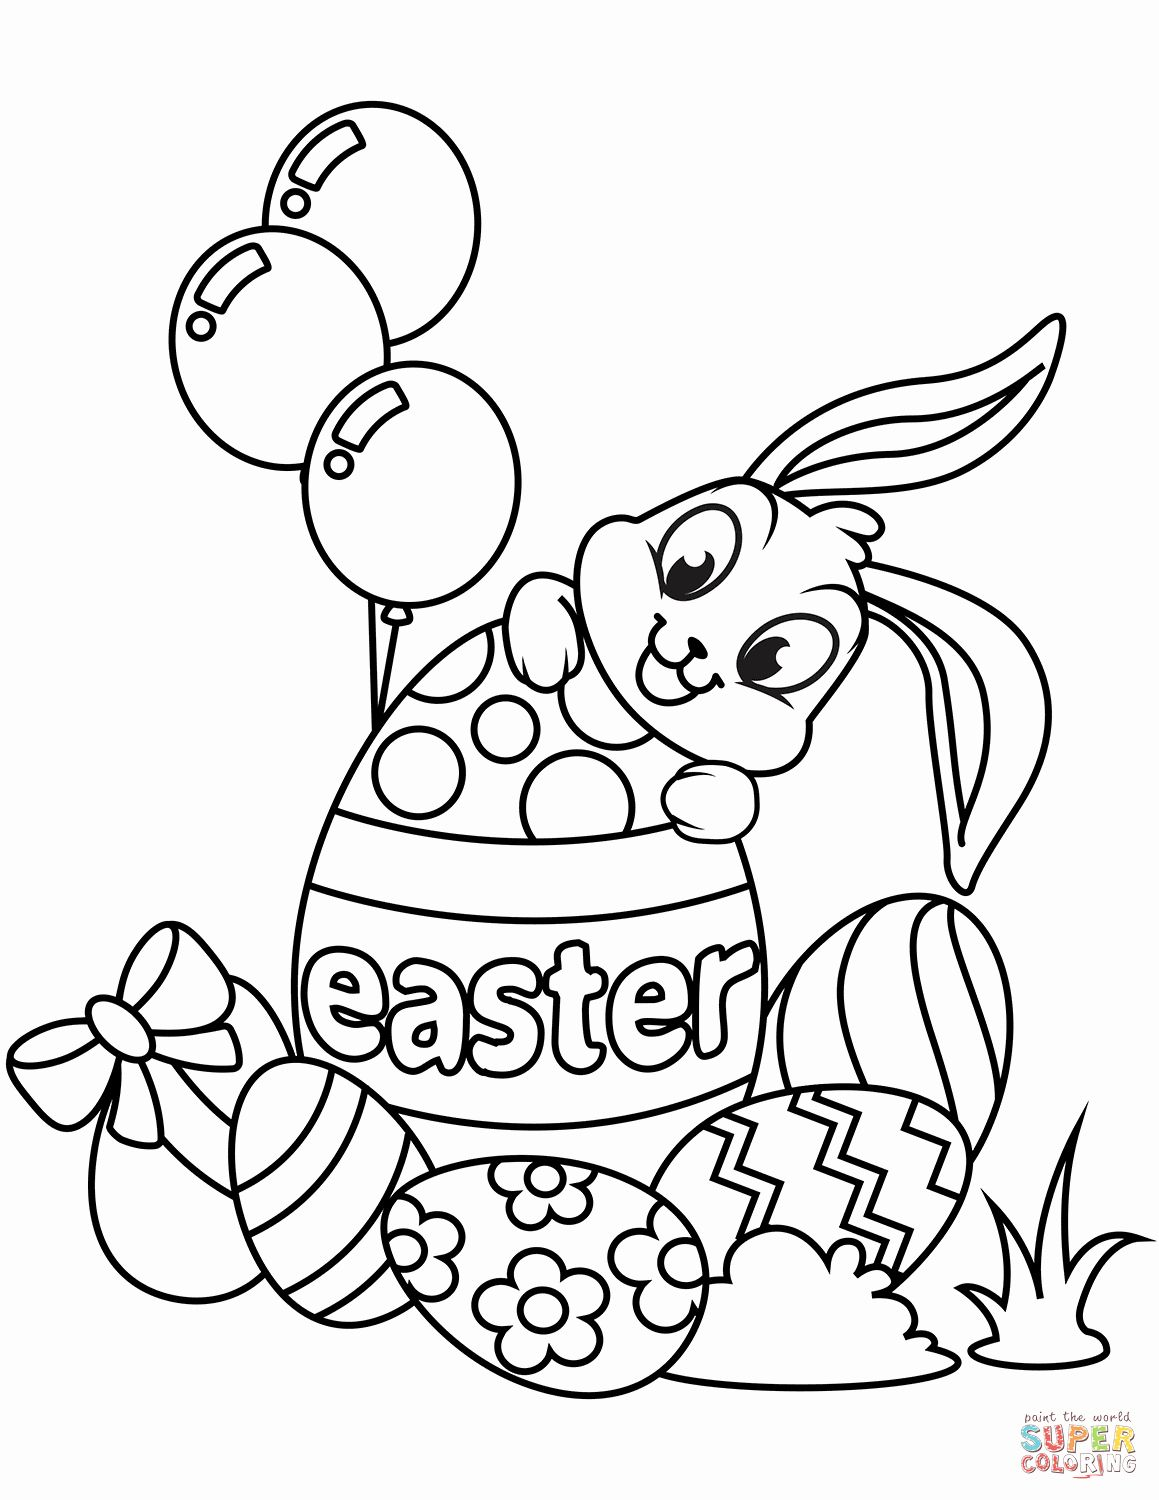 Easter Egg Coloring Pages Printable Dengan Gambar